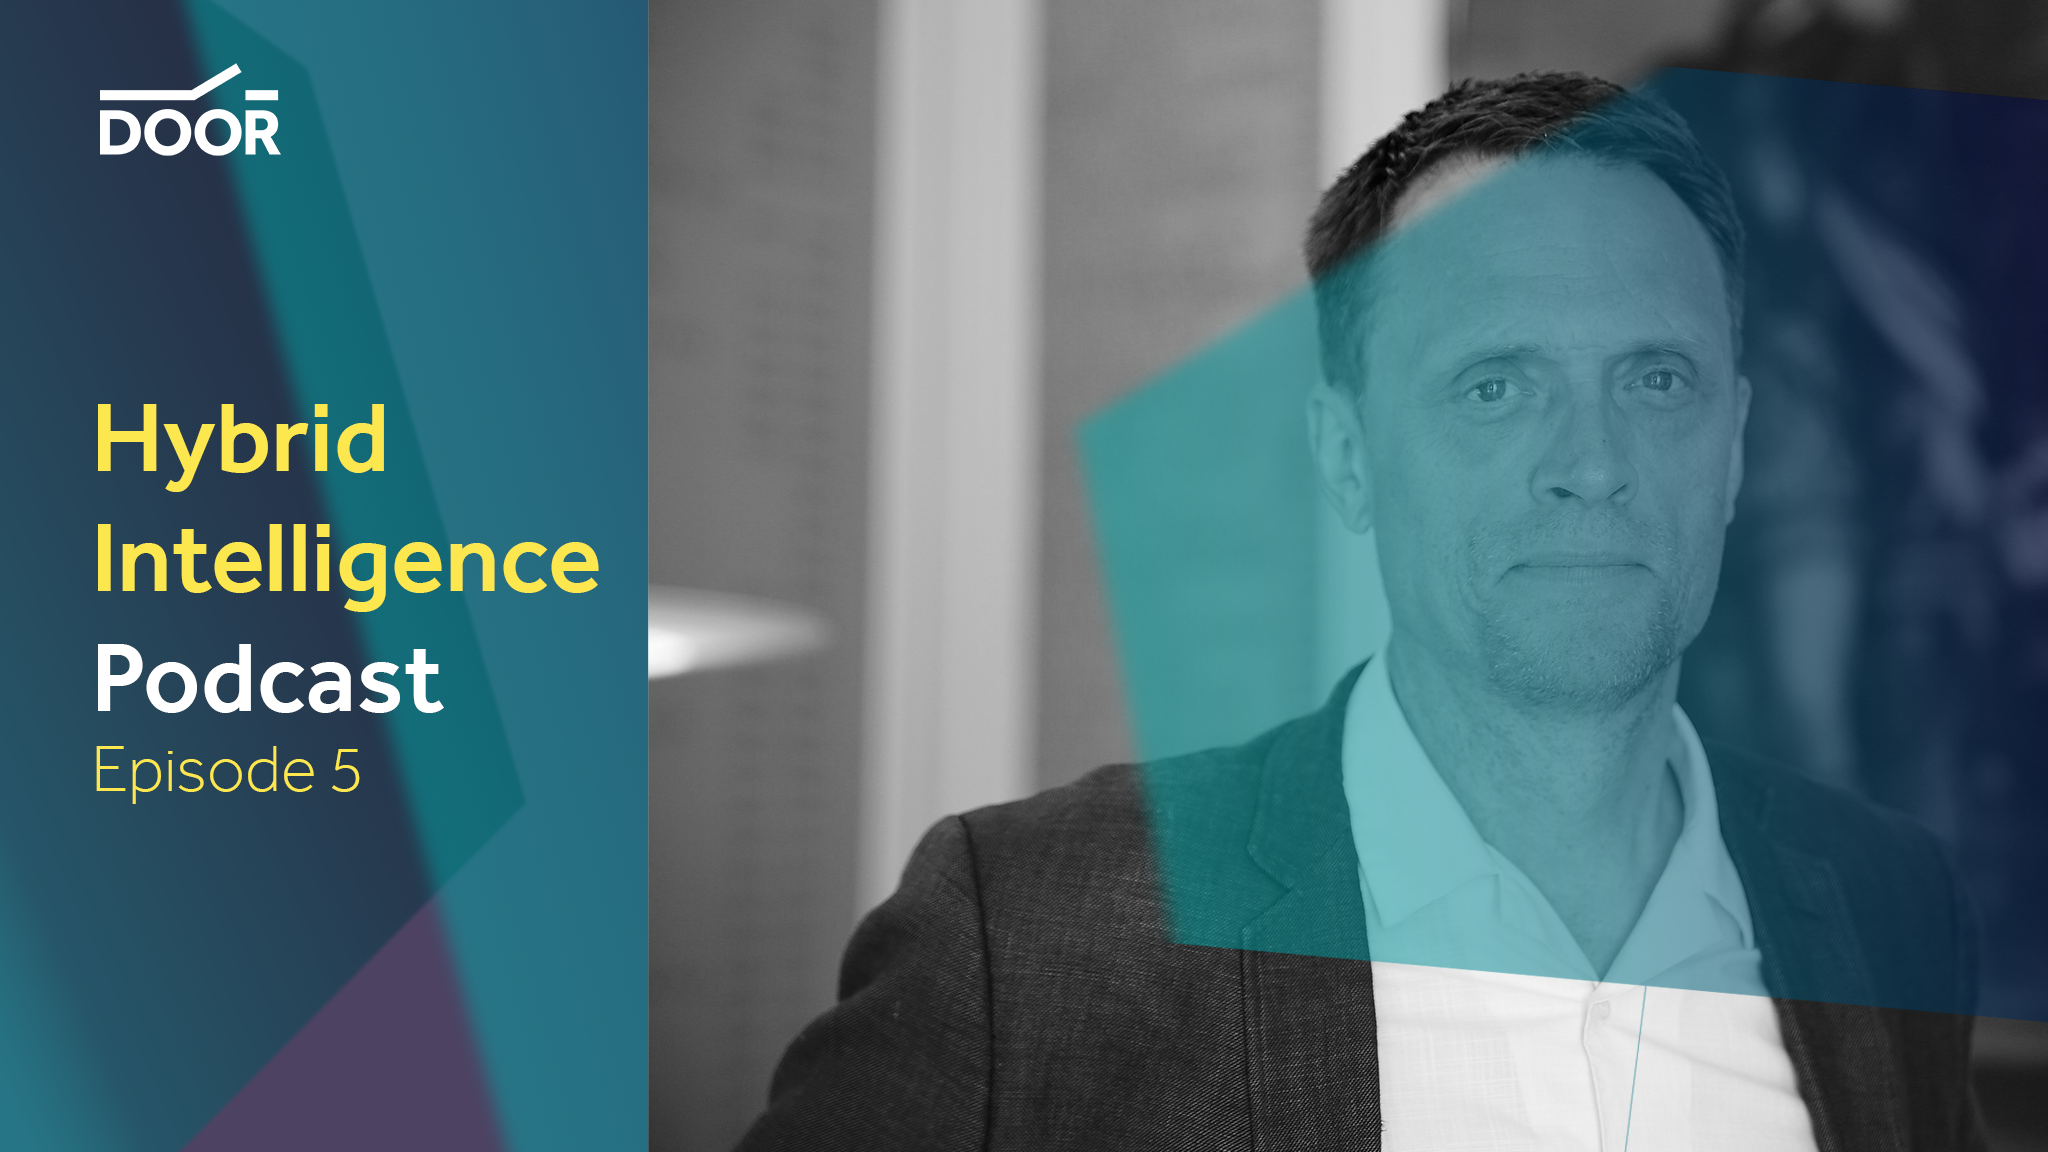 Hybrid Intelligence Podcast – Matthew Taylor, CEO of The Royal Society of Arts